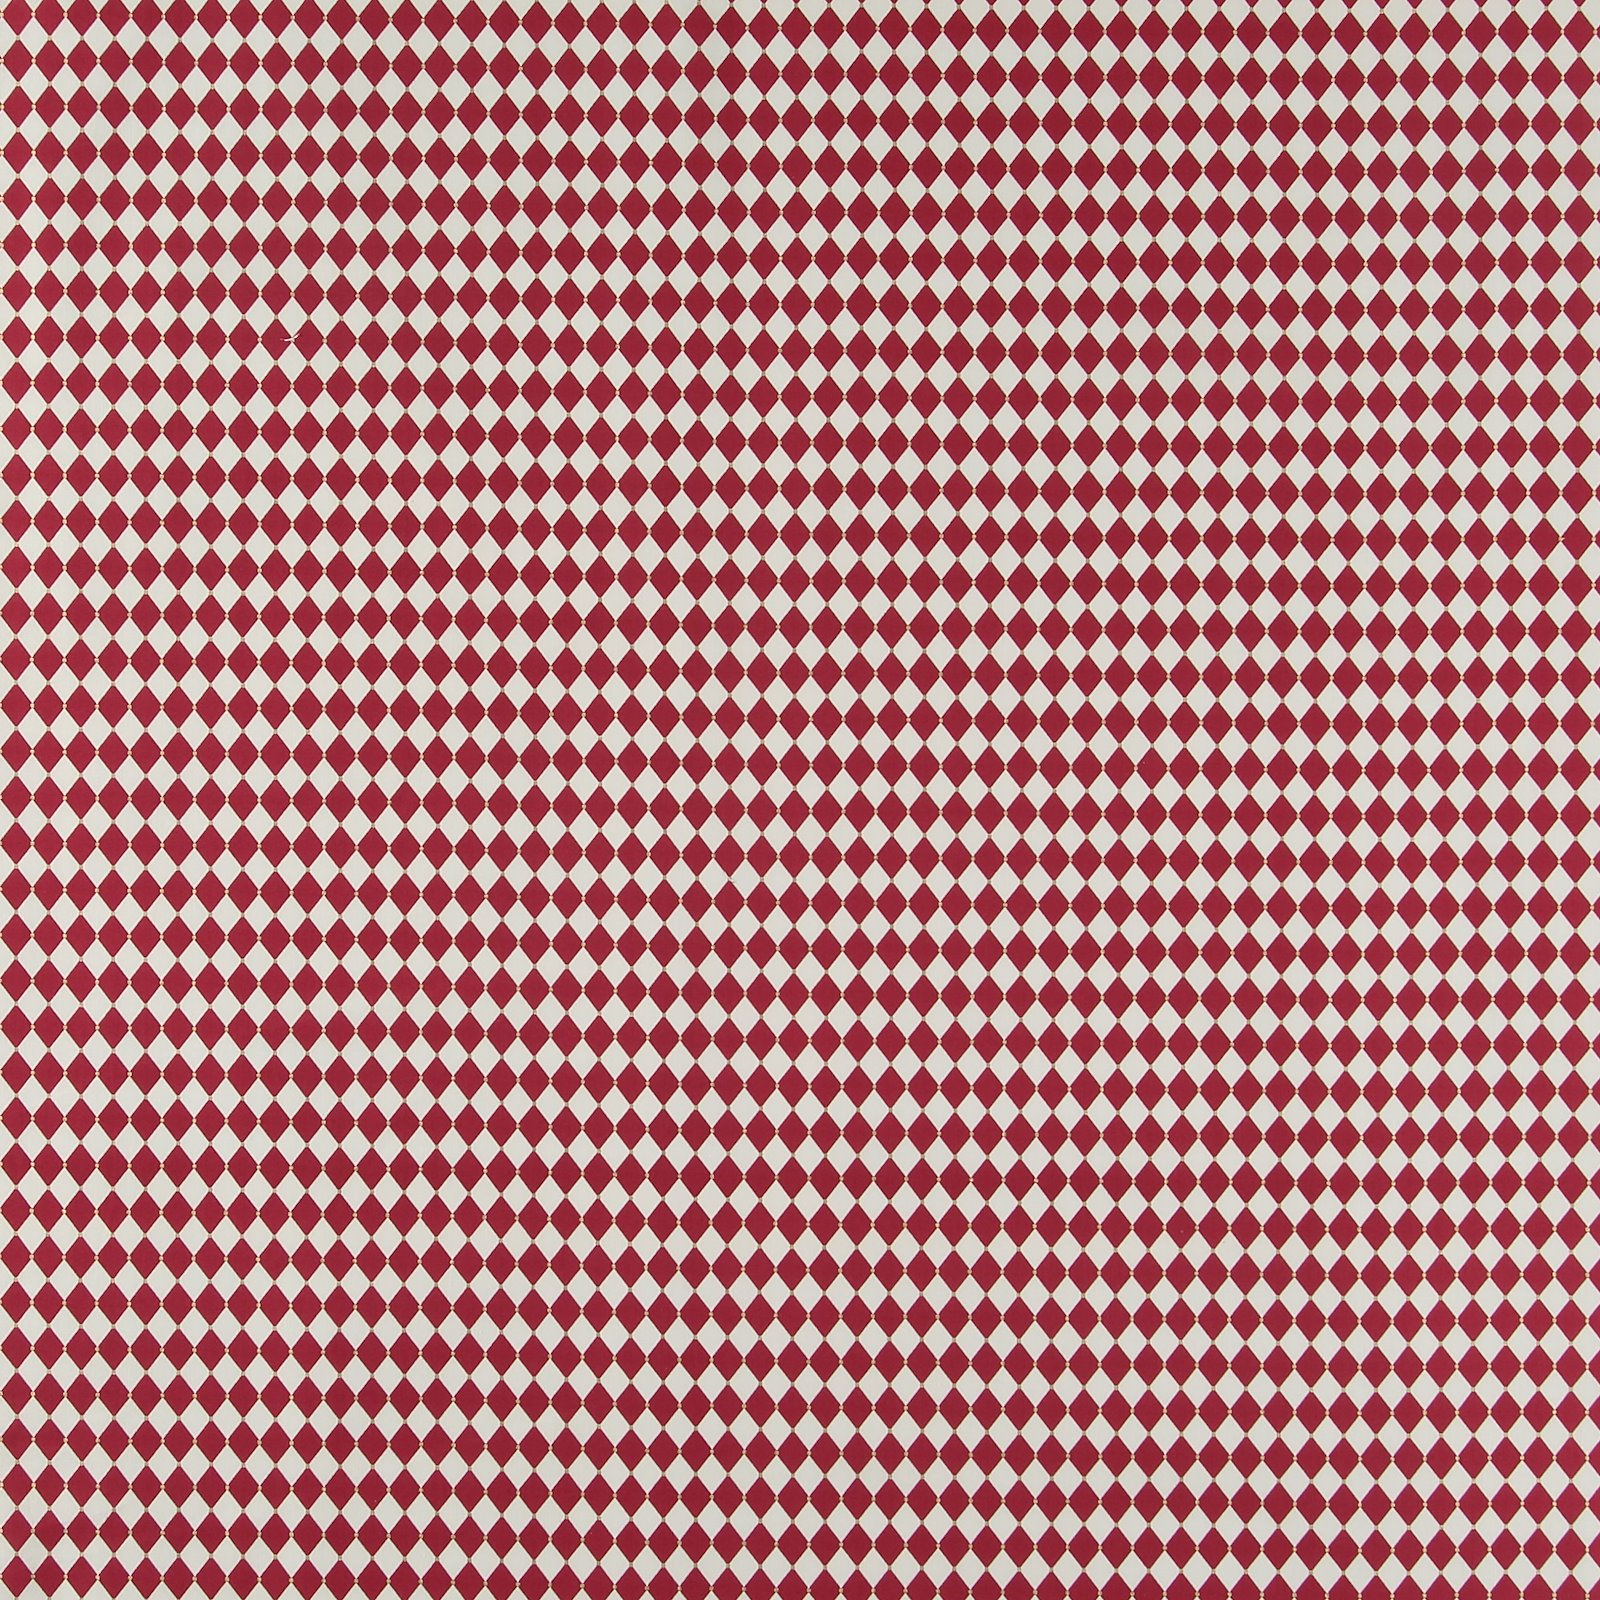 Cotton red and white harlequin checks 852395_pack_sp